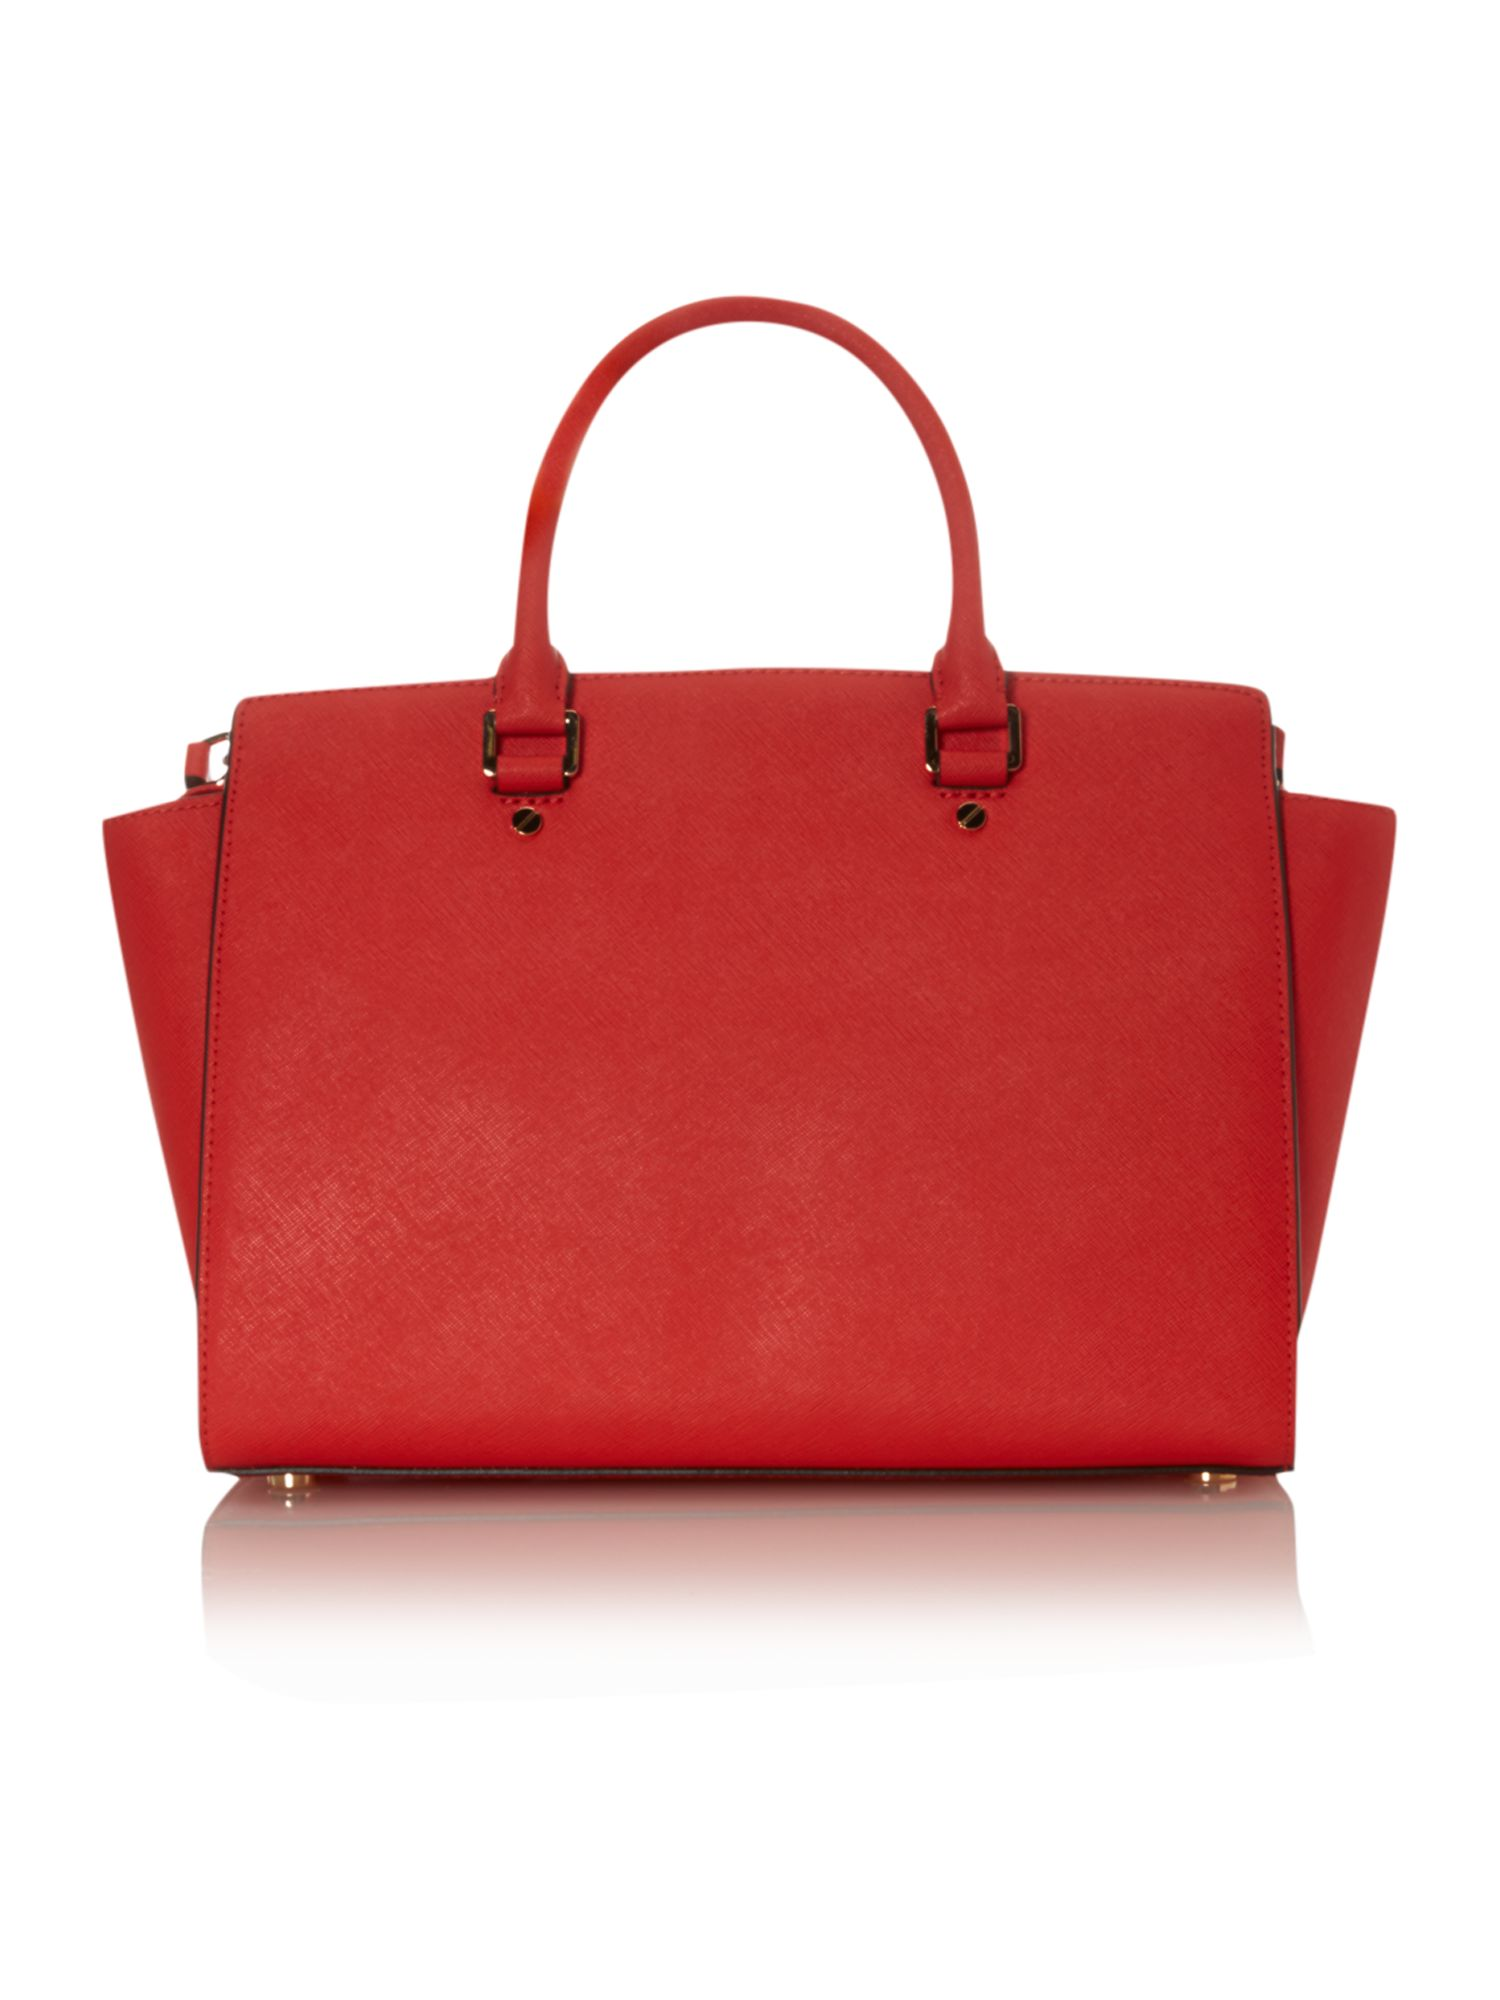 Selma red tote bag